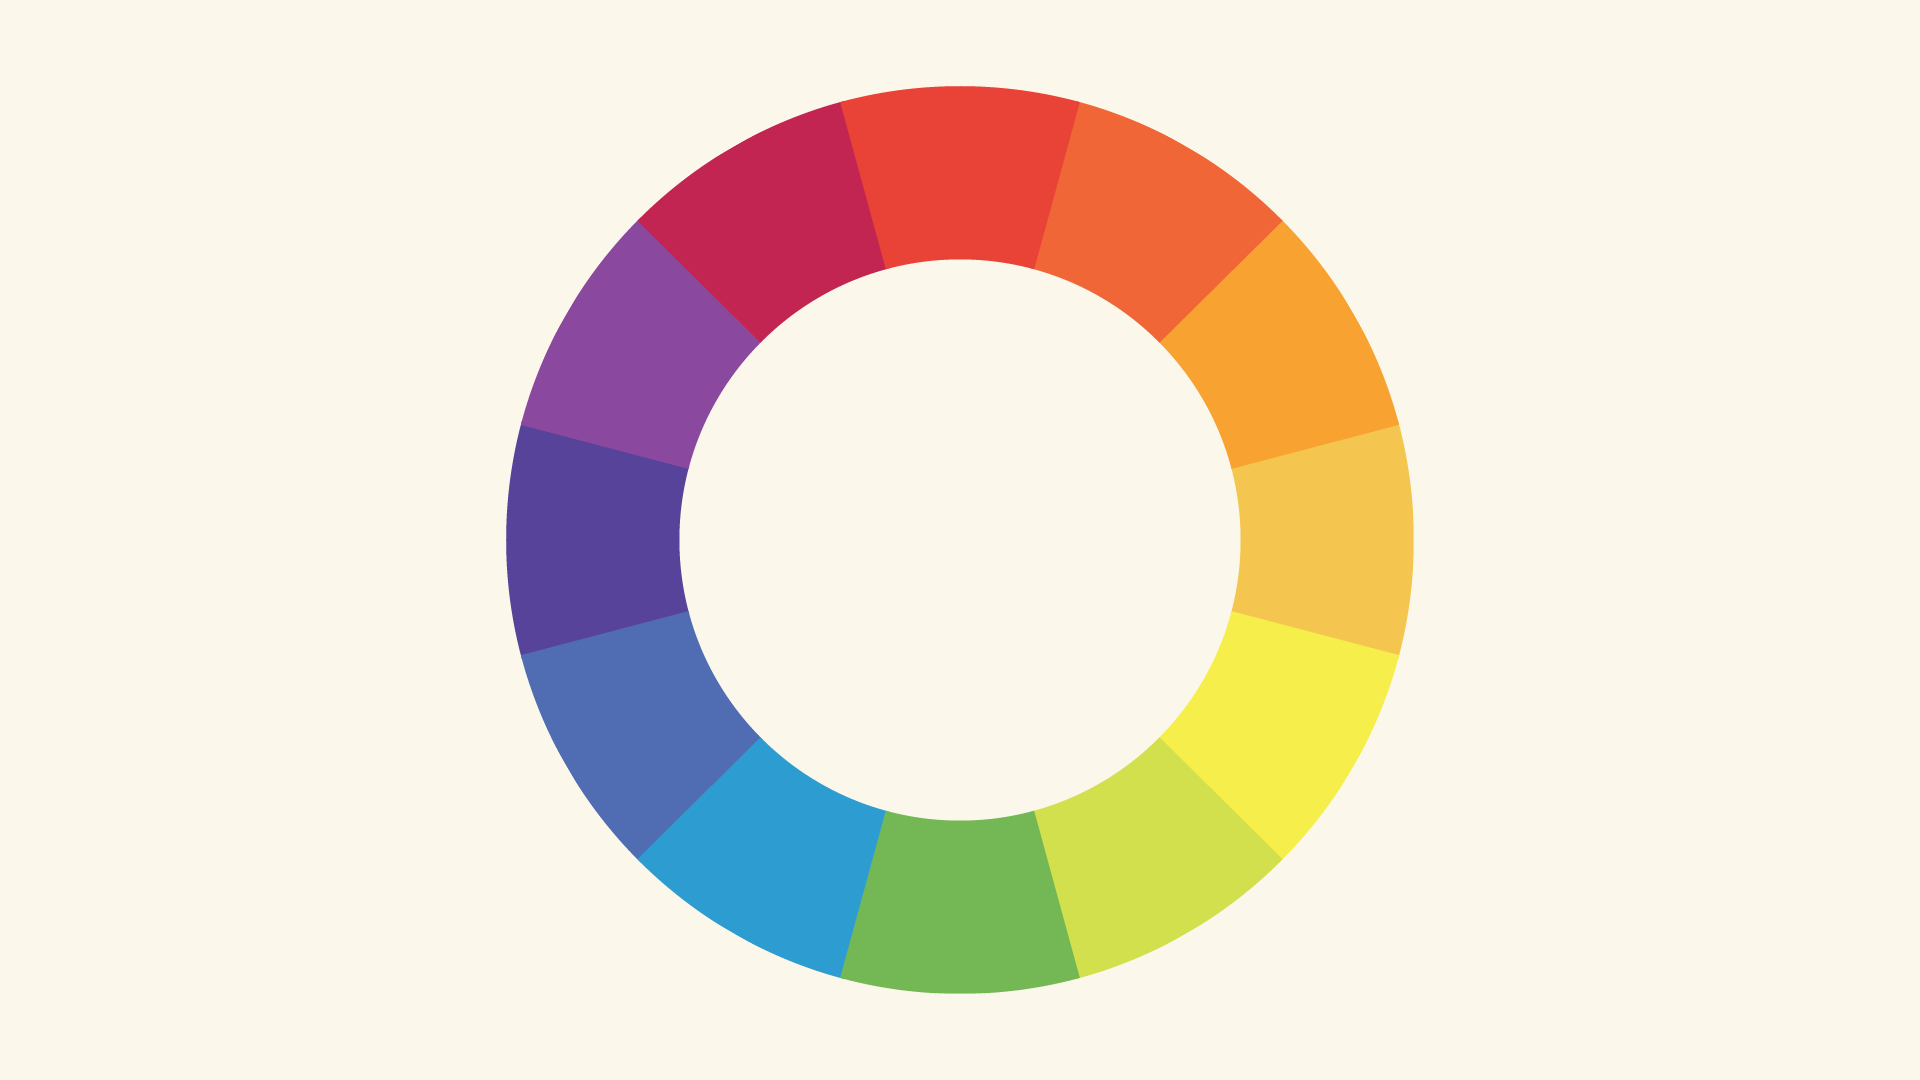 color_wheel.